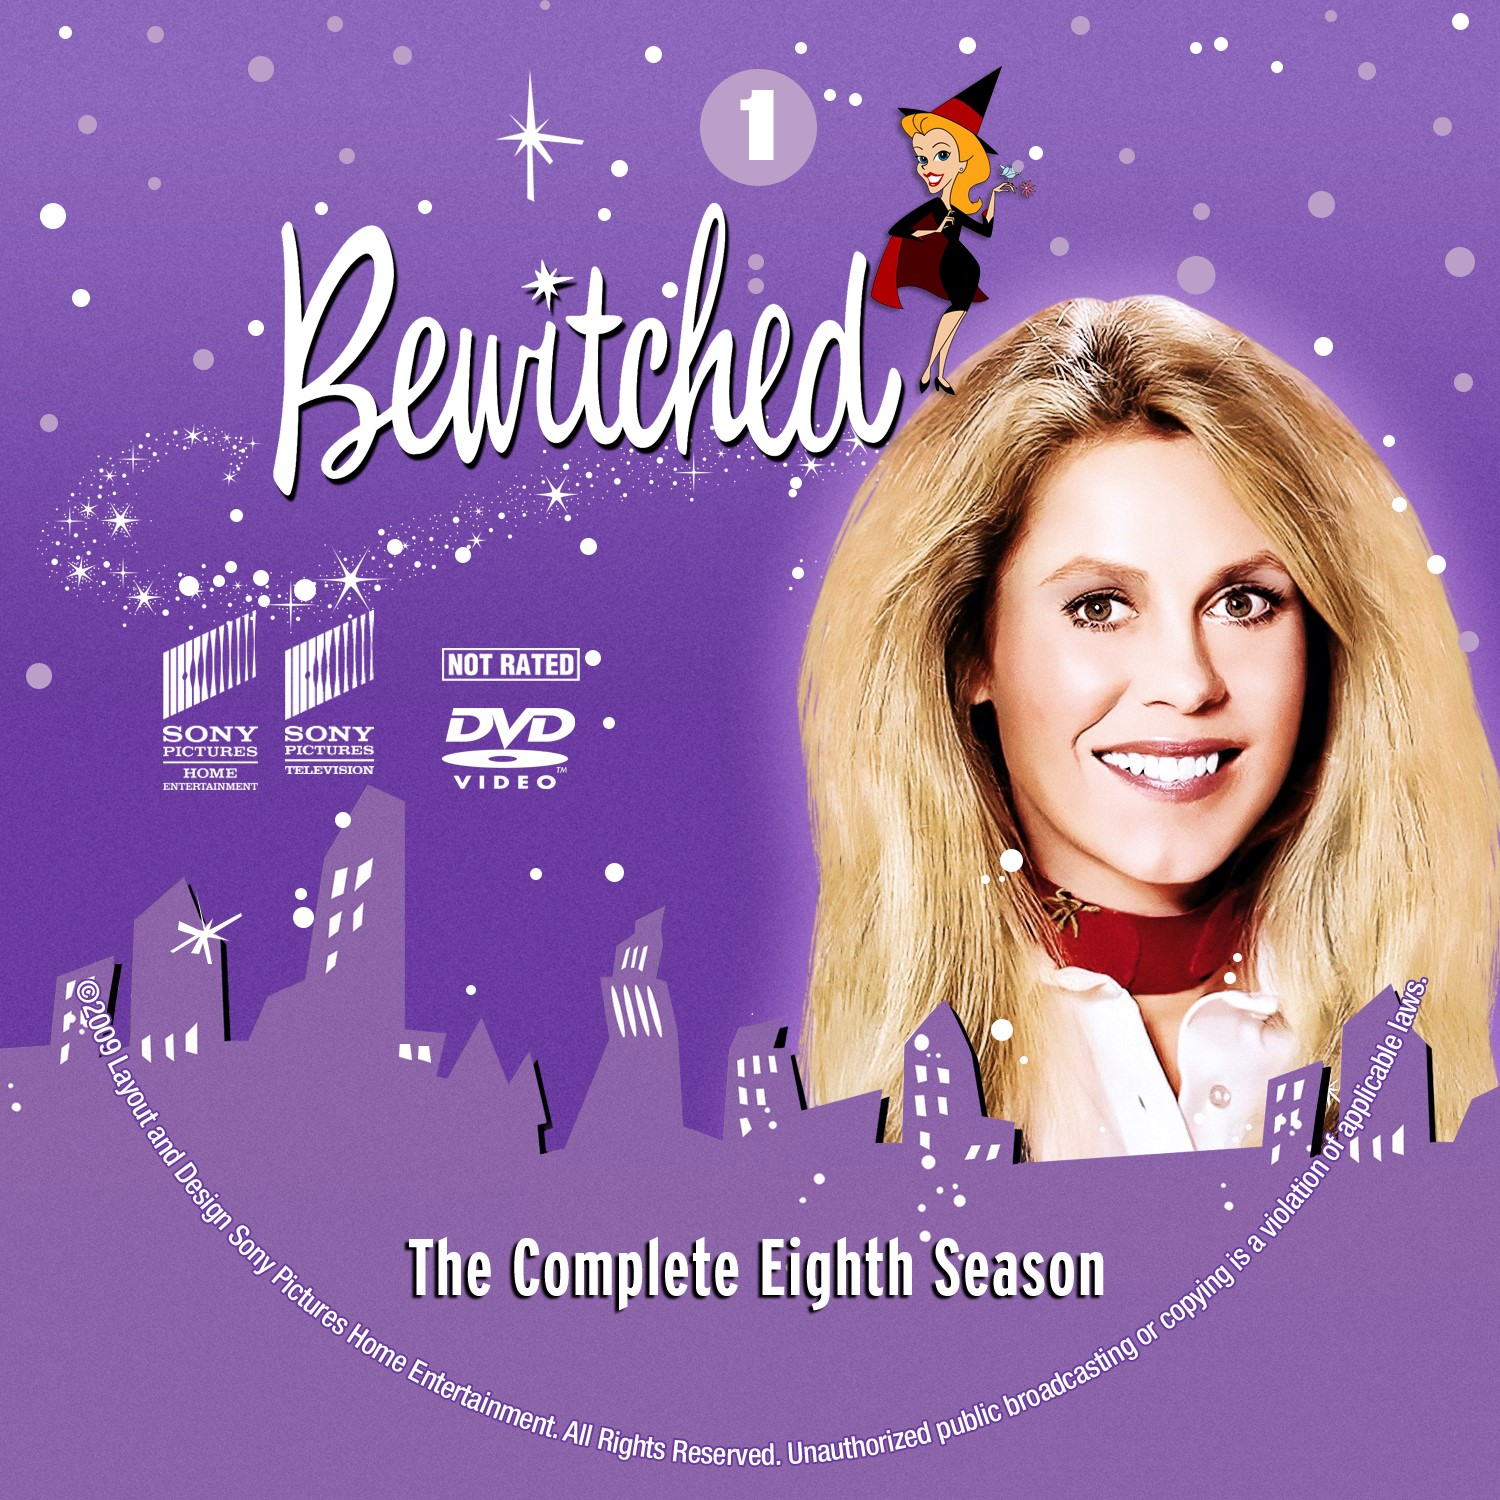 Bewitched Season 8 Disc 1-4 DVD Label